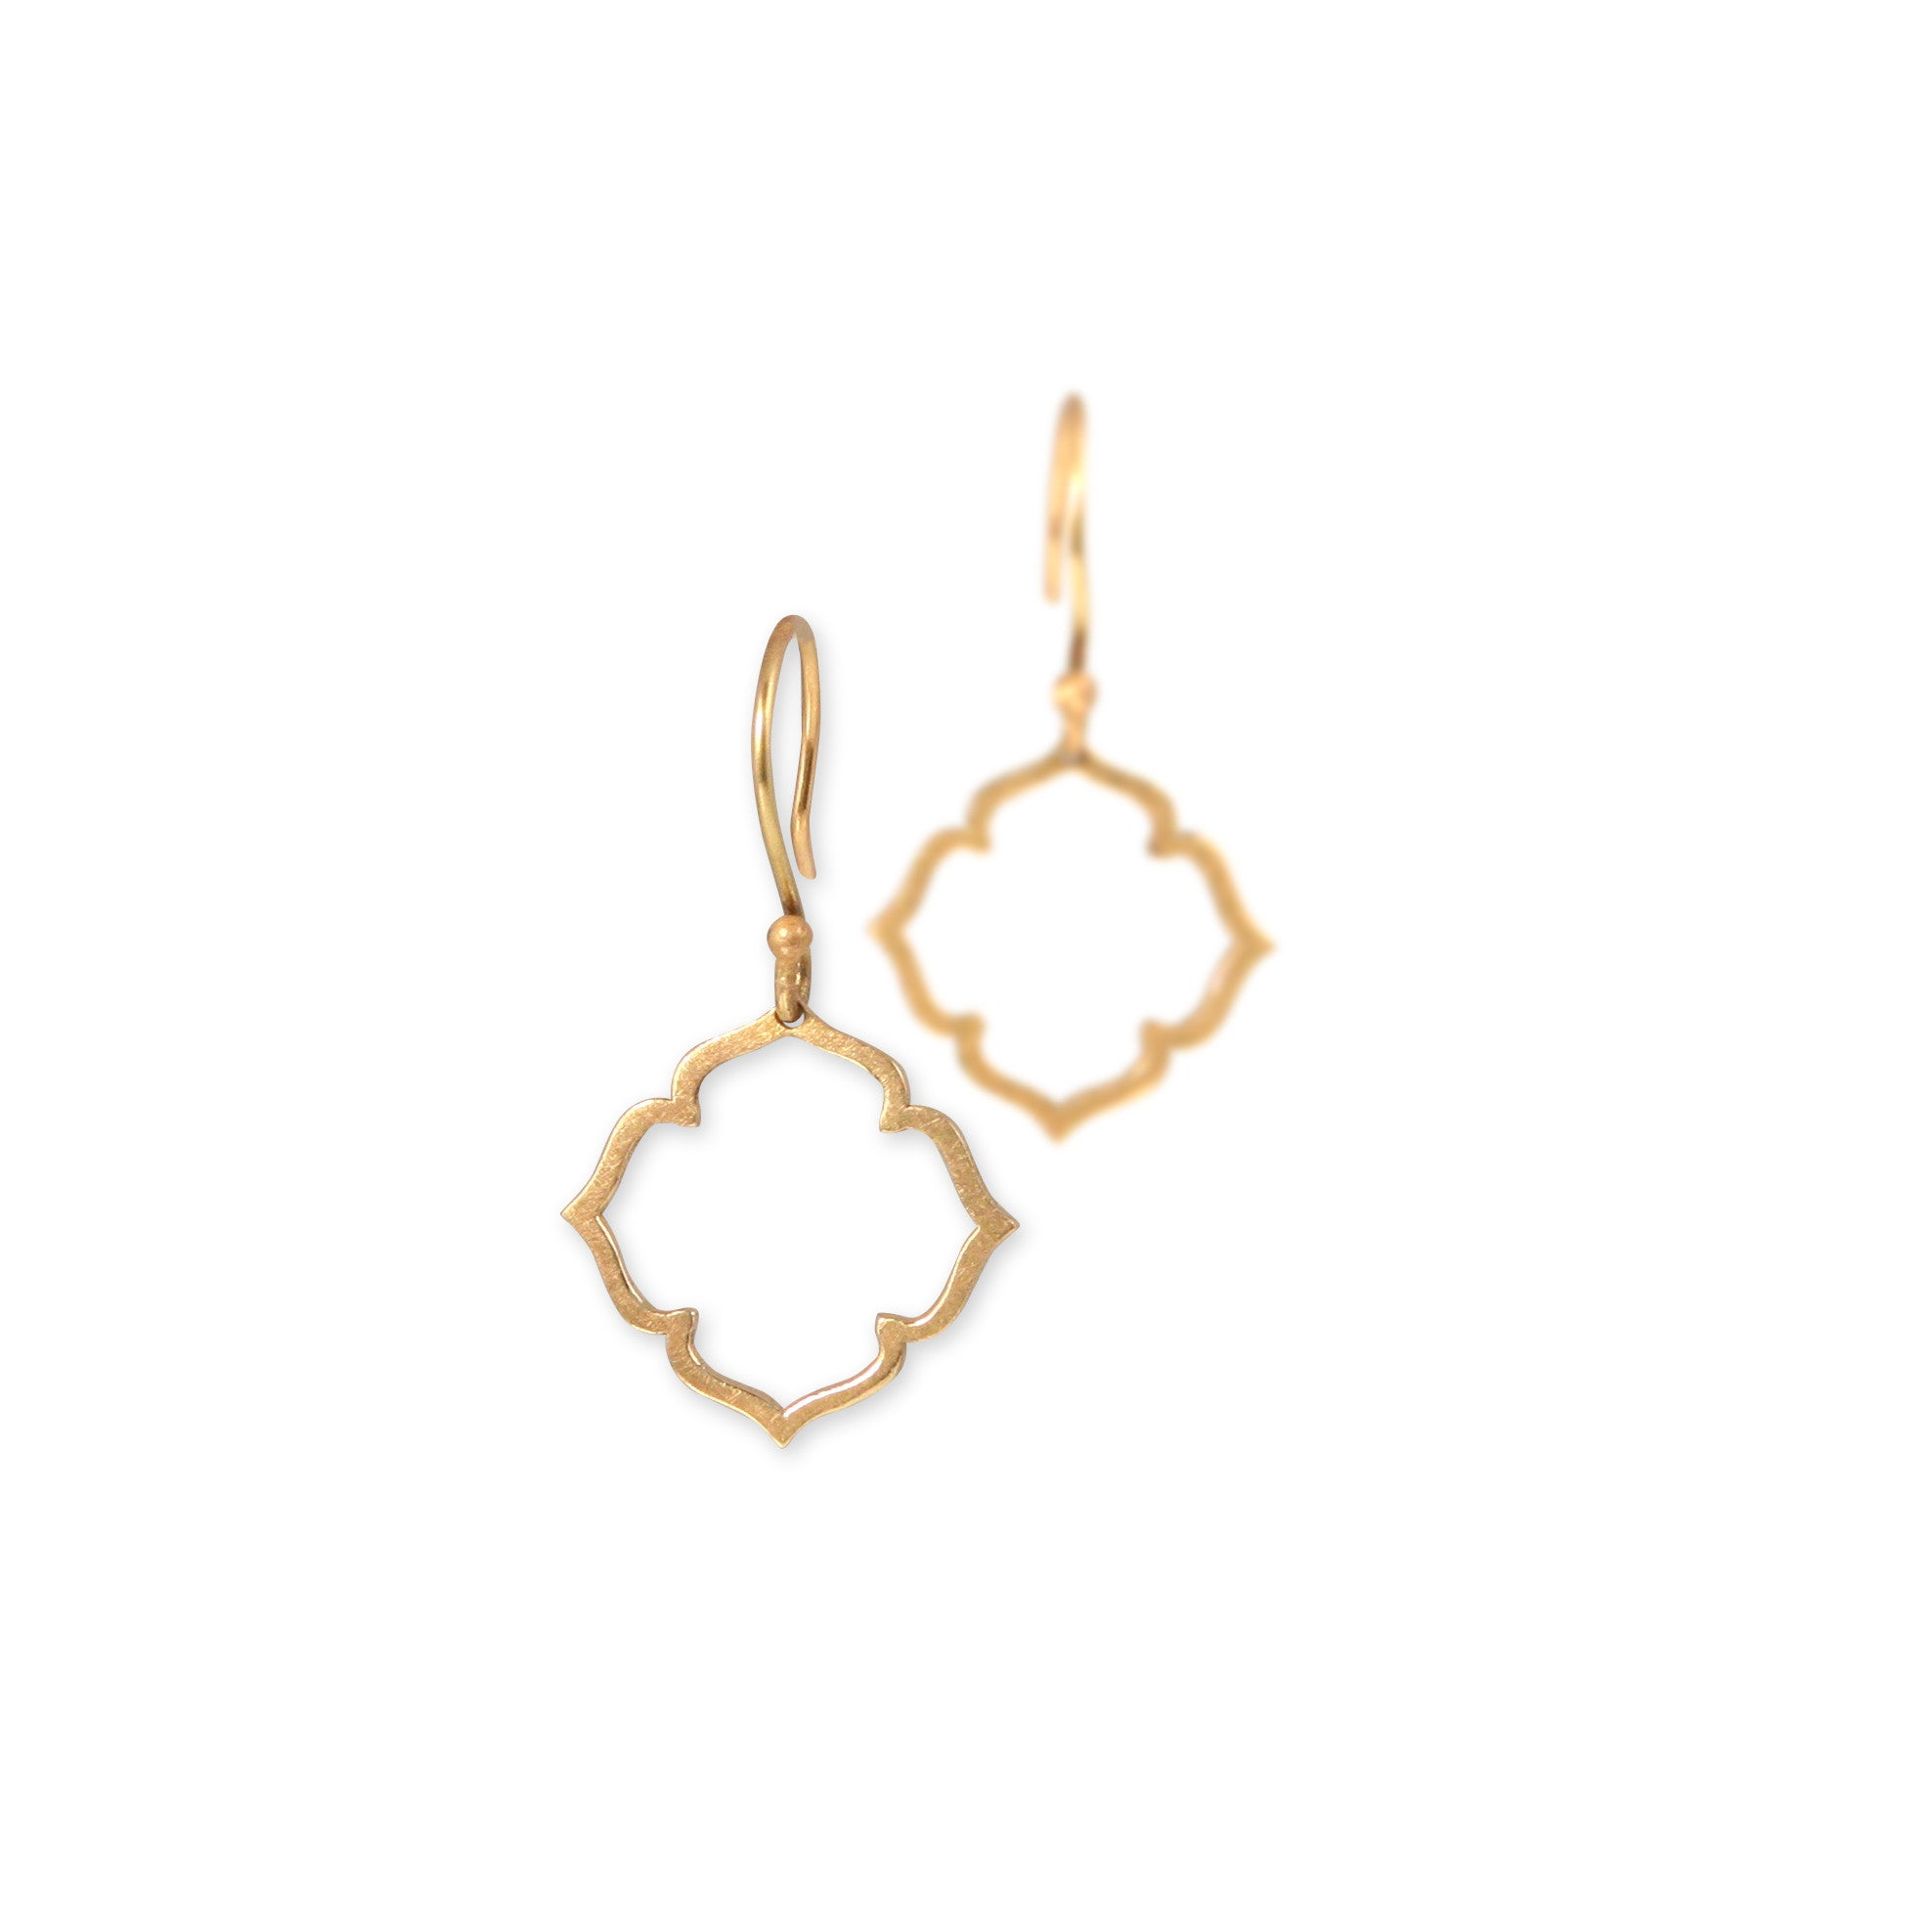 14k yellow gold small clover earrings